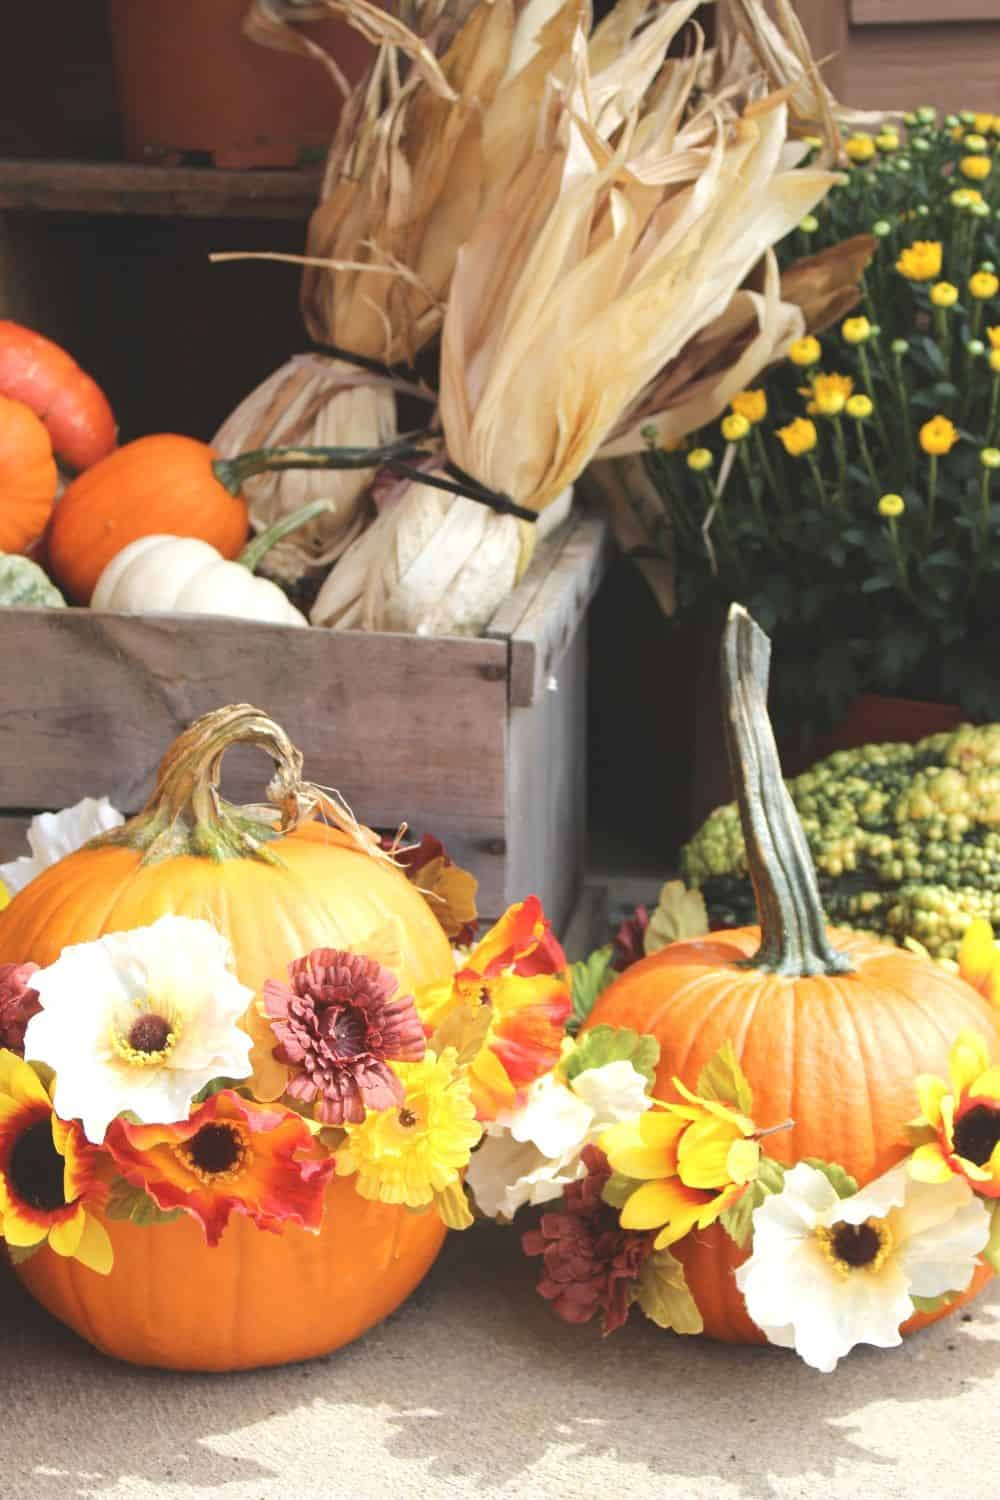 Get creative with your fall front porch decor this year. These festive no-carve flower pumpkins are so pretty and so easy to make. These pumpkin flower arrangements are so welcoming. #nocarvepumpkin #flowerarrangement #pumpkincraft